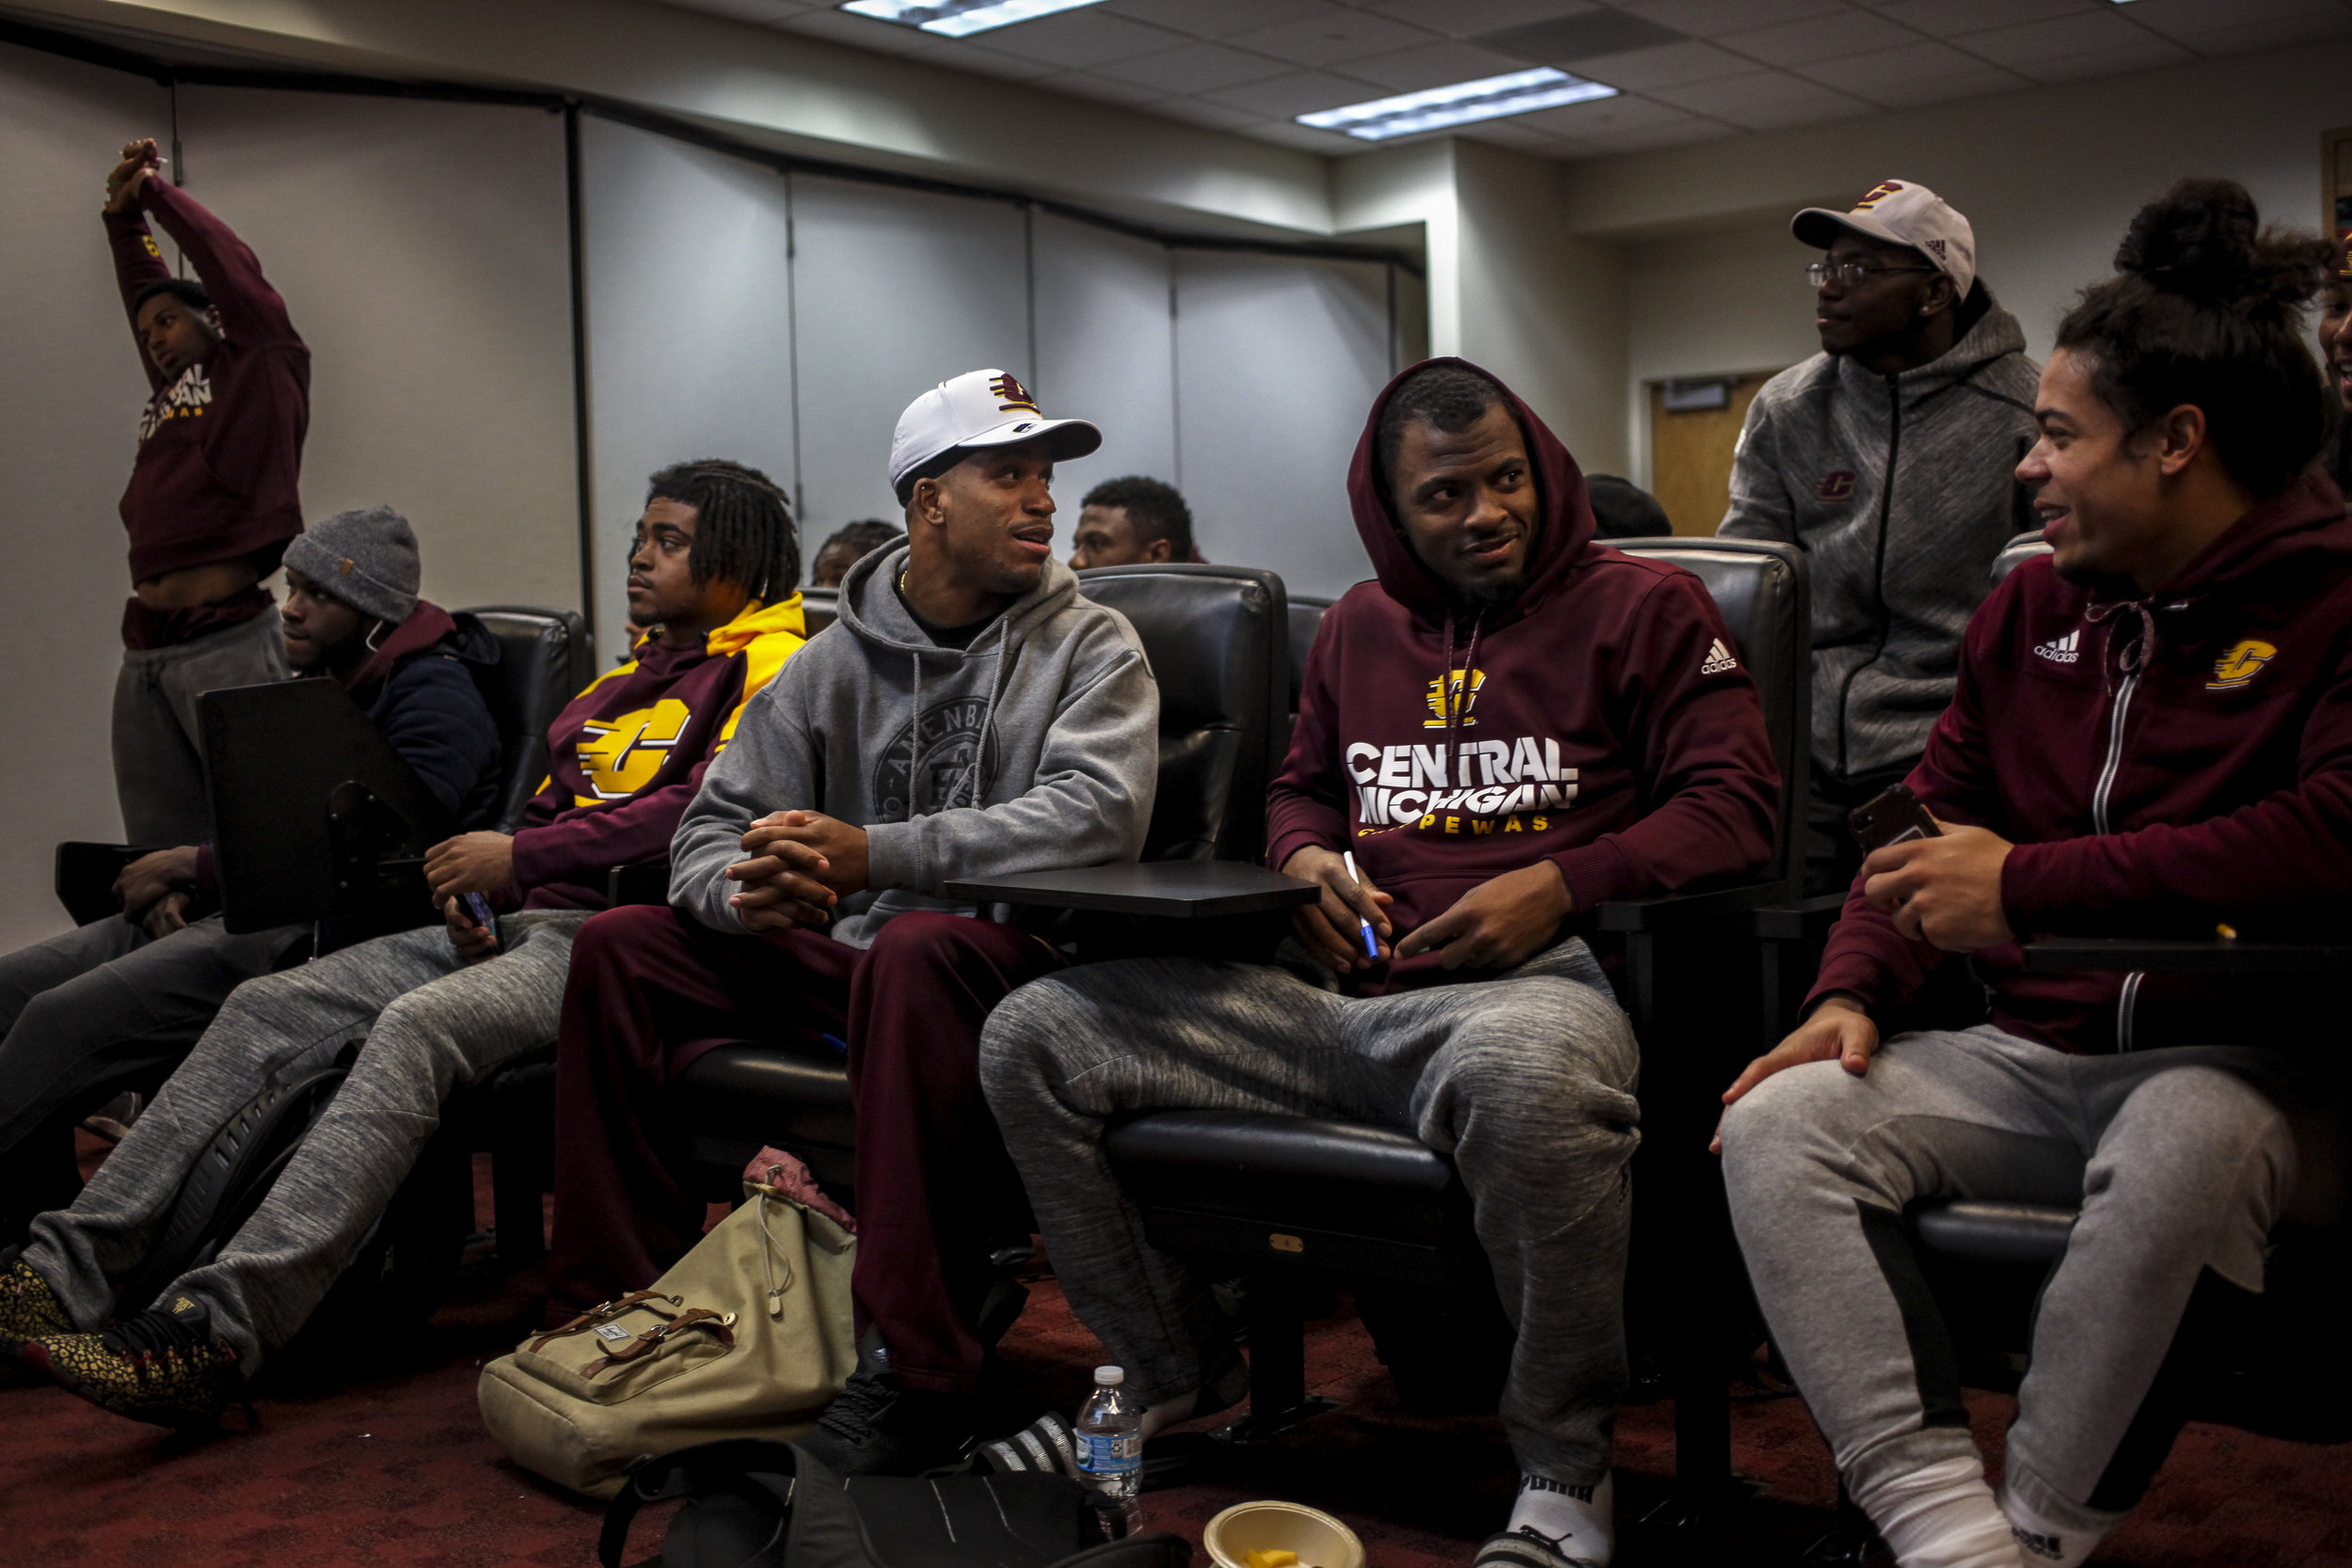 "Before an early morning practice, Ray Golden, Jr., talks with his teammates on the Central Michigan University football team. As a defensive back, Golden takes his responsibility to his team serious and refers to football as his ""job."" Because of the long hours spent with his team, the football team is a second family for Ray."